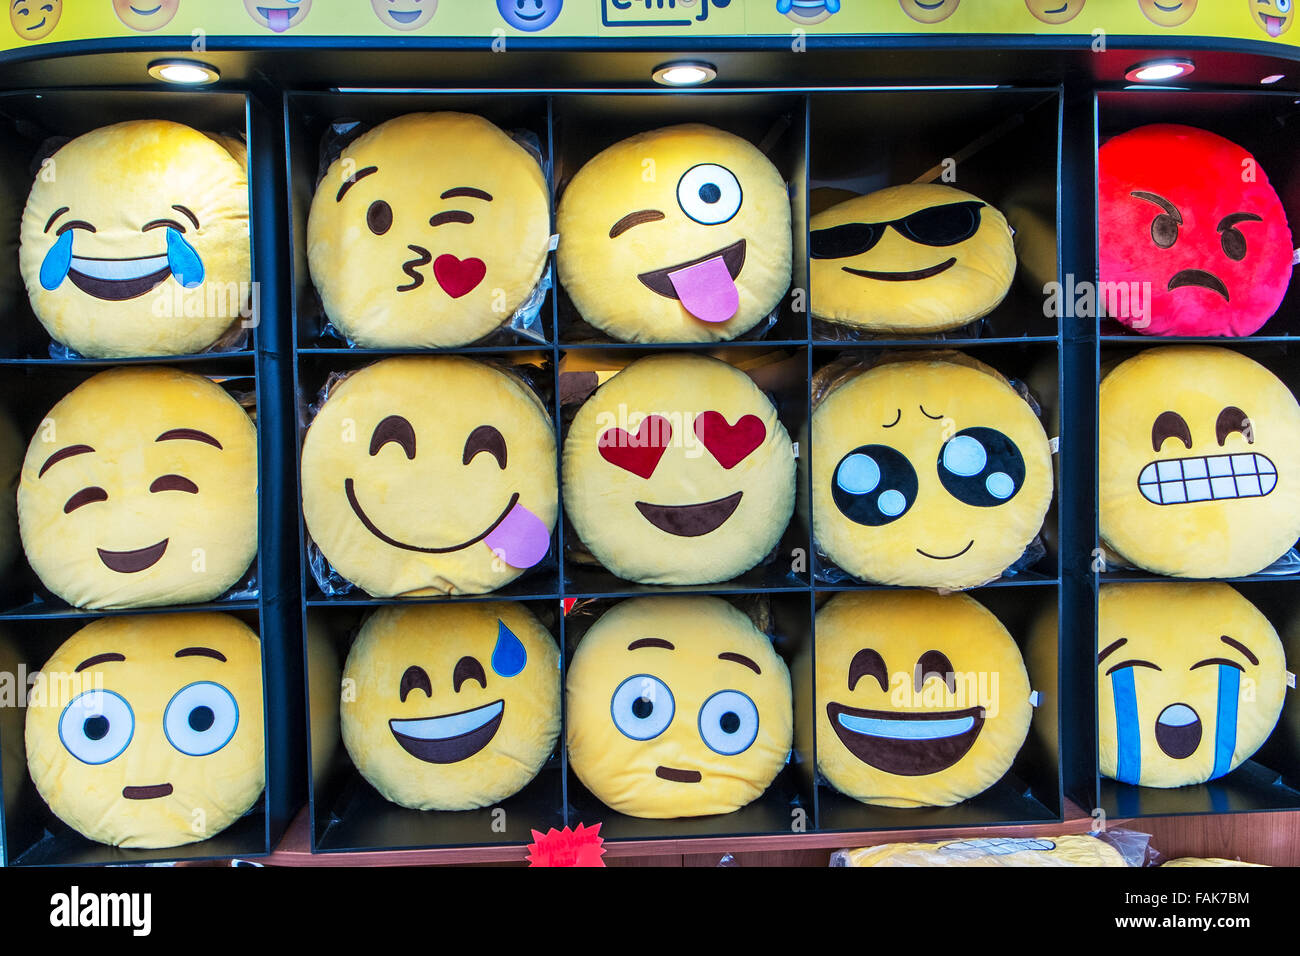 Emoji Emojis emoticon teen language smilies happy sad cheeky angry face faces phone gestures text texting shorthand - Stock Image